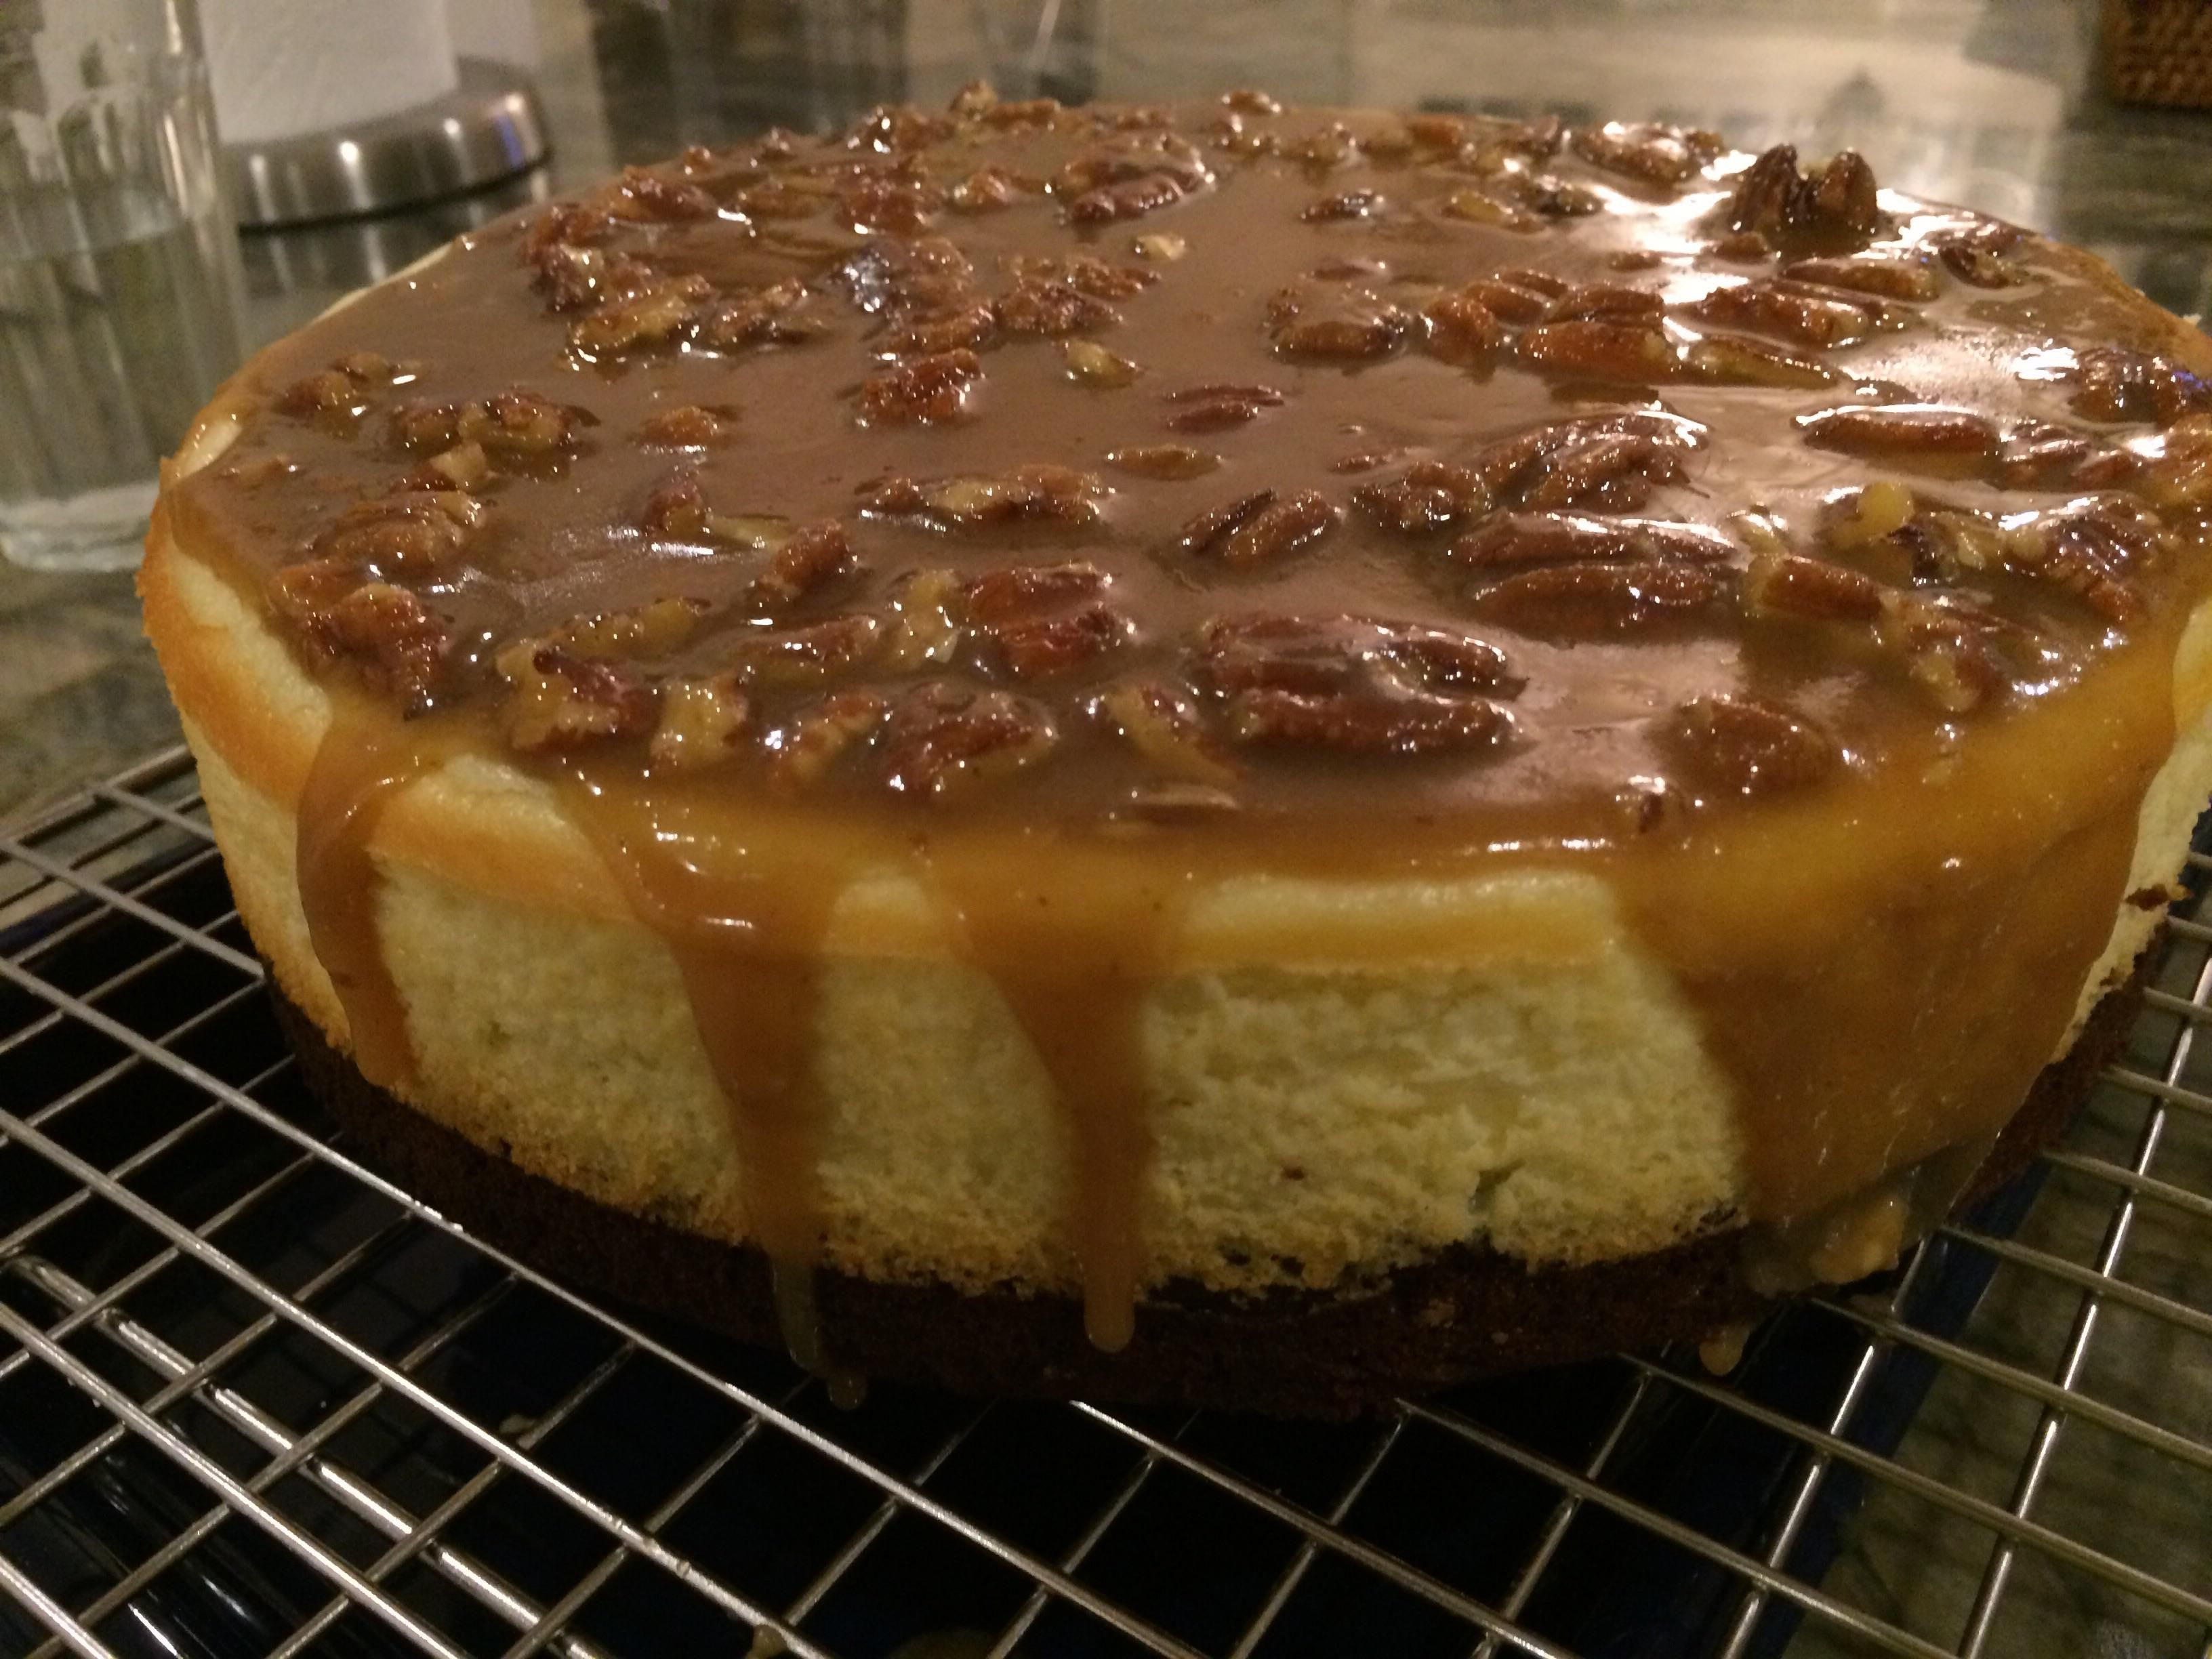 [Homemade] Brownie Cheesecake goodness!